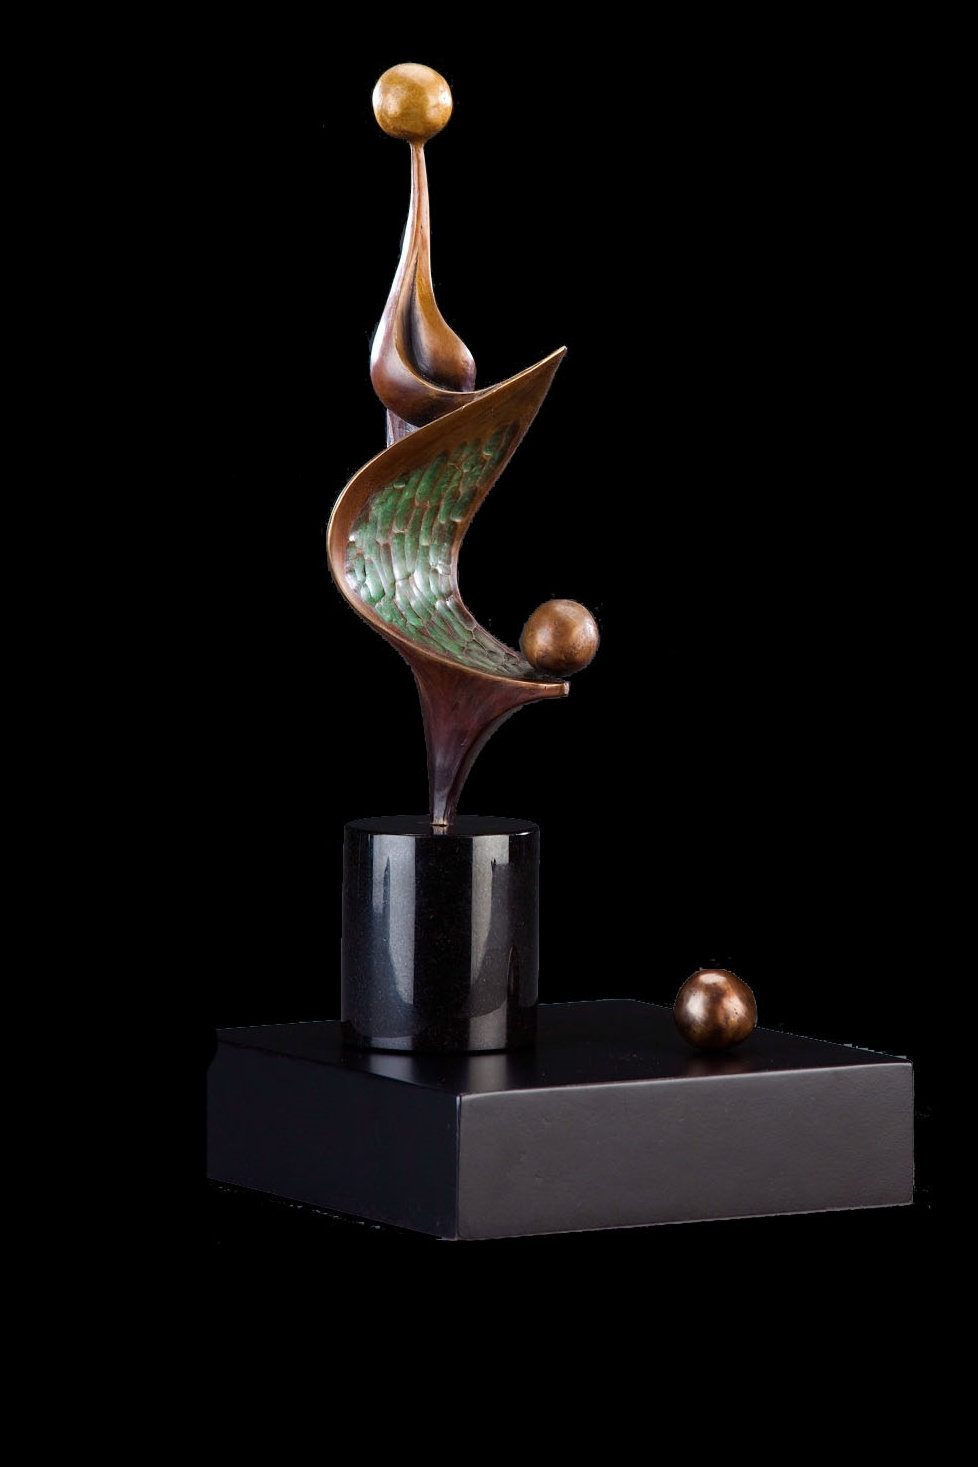 """Soulplay  ,Bronze,21"""" H x9.5"""" W x 9.5"""" D (including the base), Edition of 35: Creativity is born in expansion. Playing with creativity is a way to expand one's soul. Intentionally allowing the soul to play is a way to bring healthy, expansive energy into one's life"""